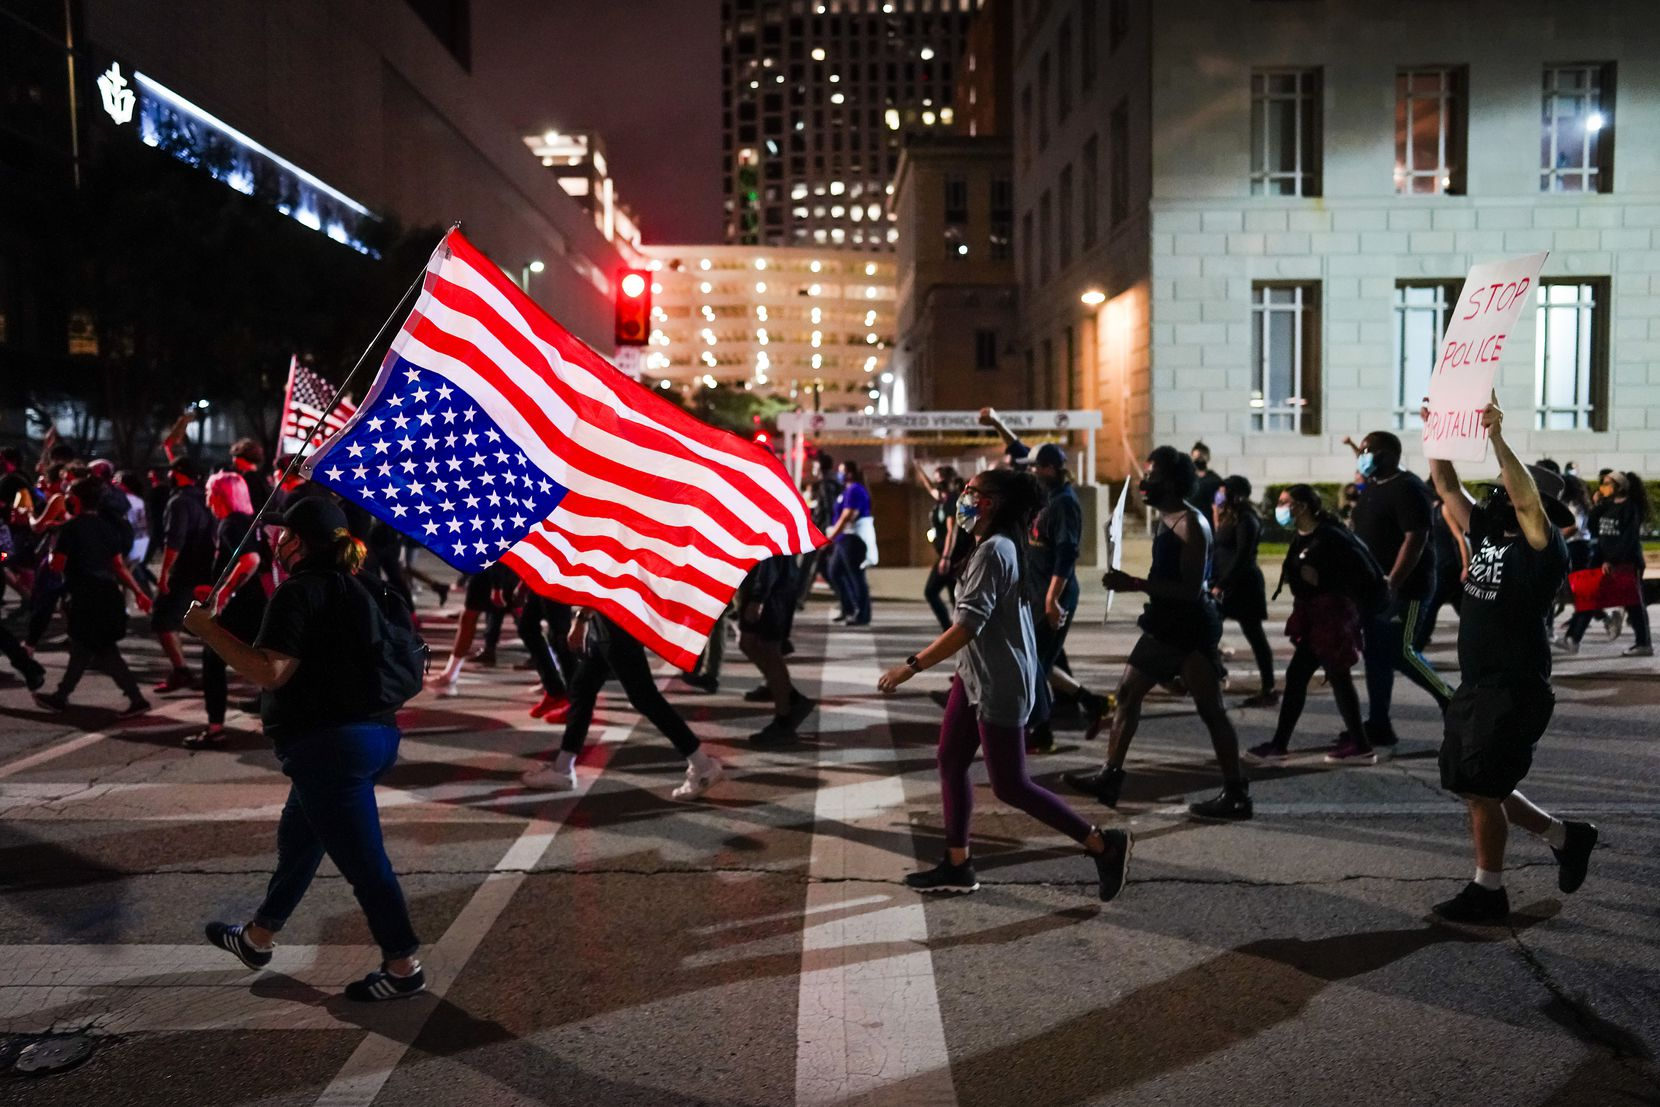 Demonstrators march on Ervay Street in downtown Dallas on Wednesday, Sept. 23, 2020. Protesters took to the streets around the country after a Kentucky grand jury brought no charges against Louisville police for the killing of Breonna Taylor.